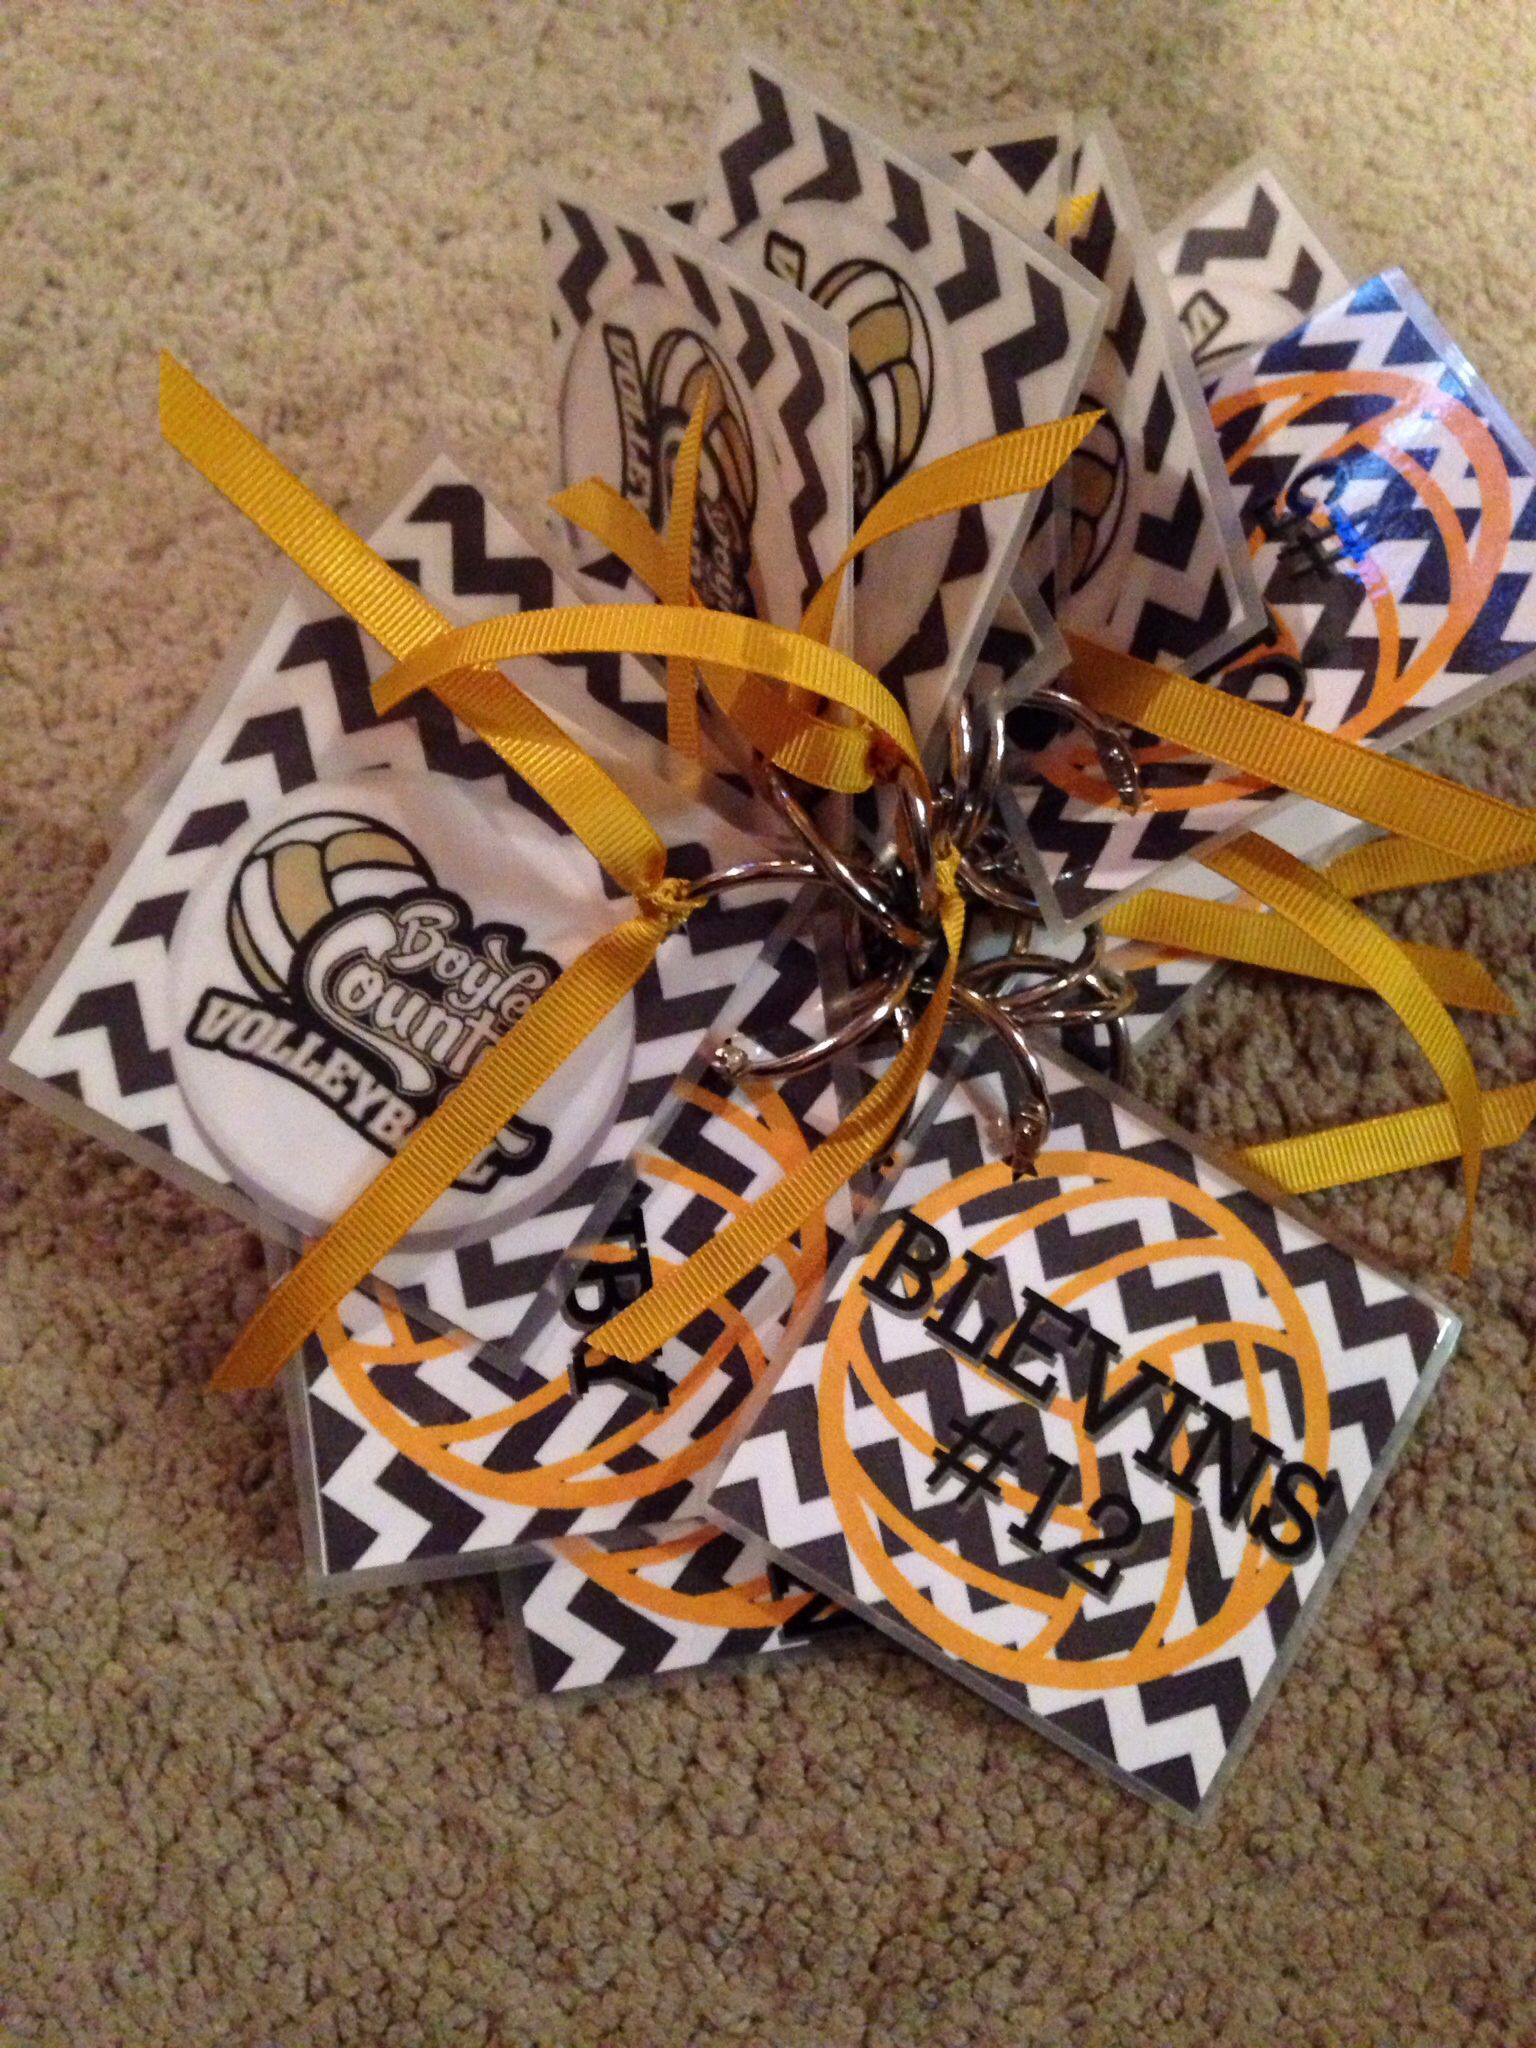 Volleyball Bag Tags For The Team Perfect To Tie Winning Ribbons On After A Win Volleyball Bag Tags Volleyball Bag Volleyball Locker